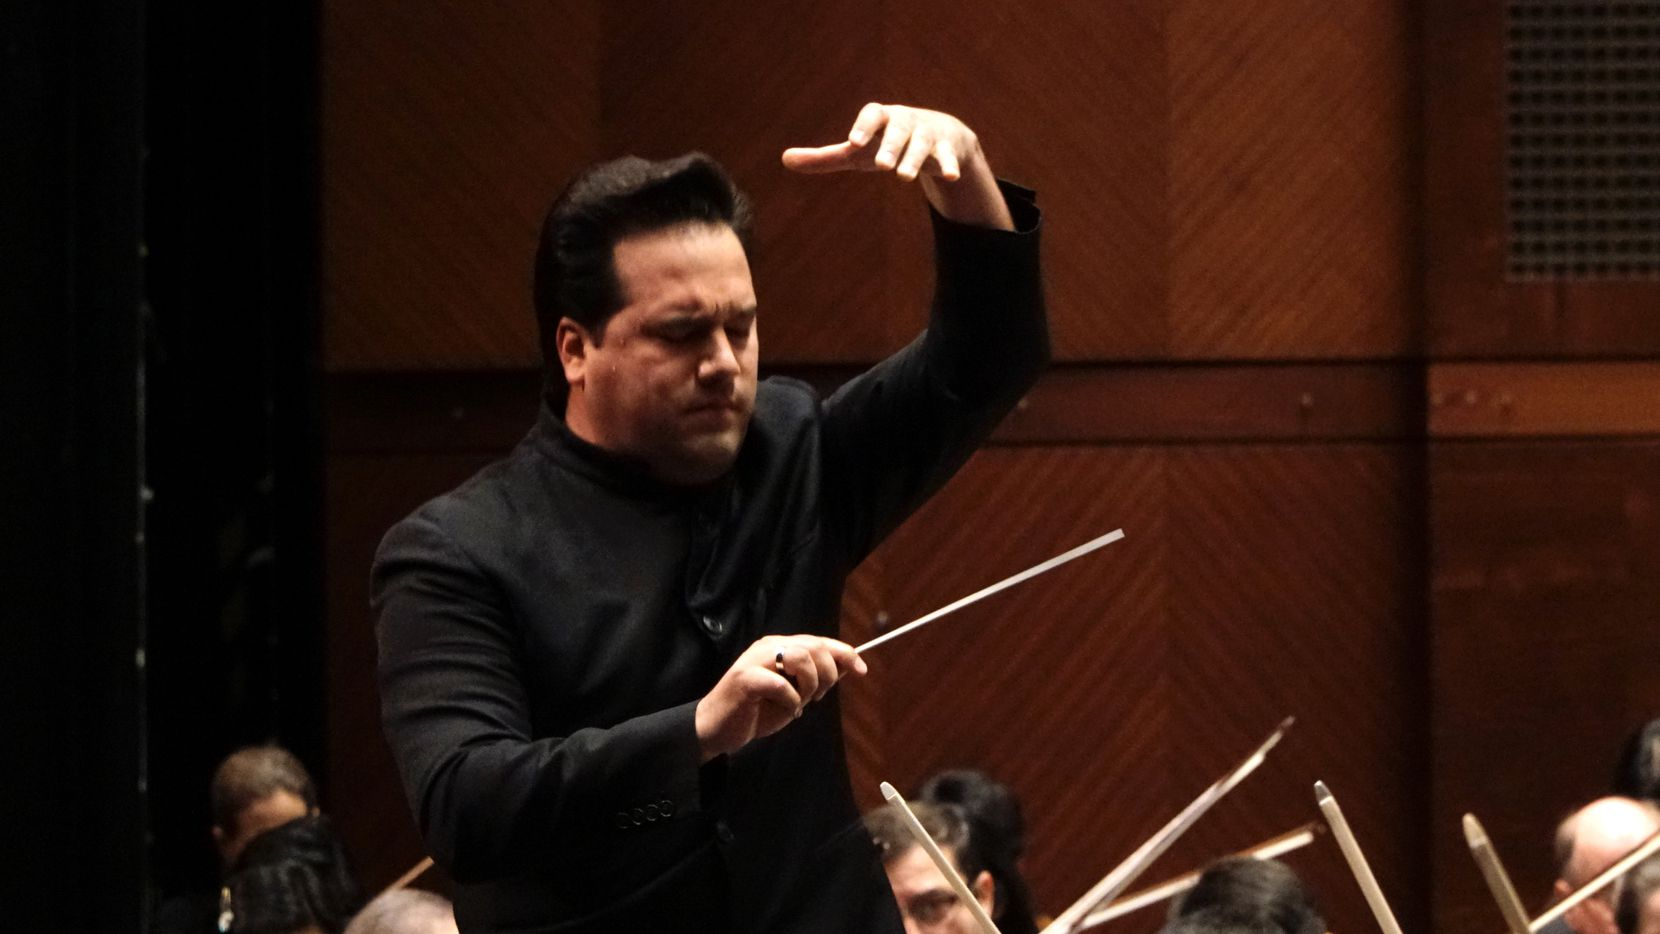 Guest Conductor Robert Trevino leads the Fort Worth Symphony Orchestra at Bass Performance Hall in Fort Worth, TX on Friday, February 28, 2020.